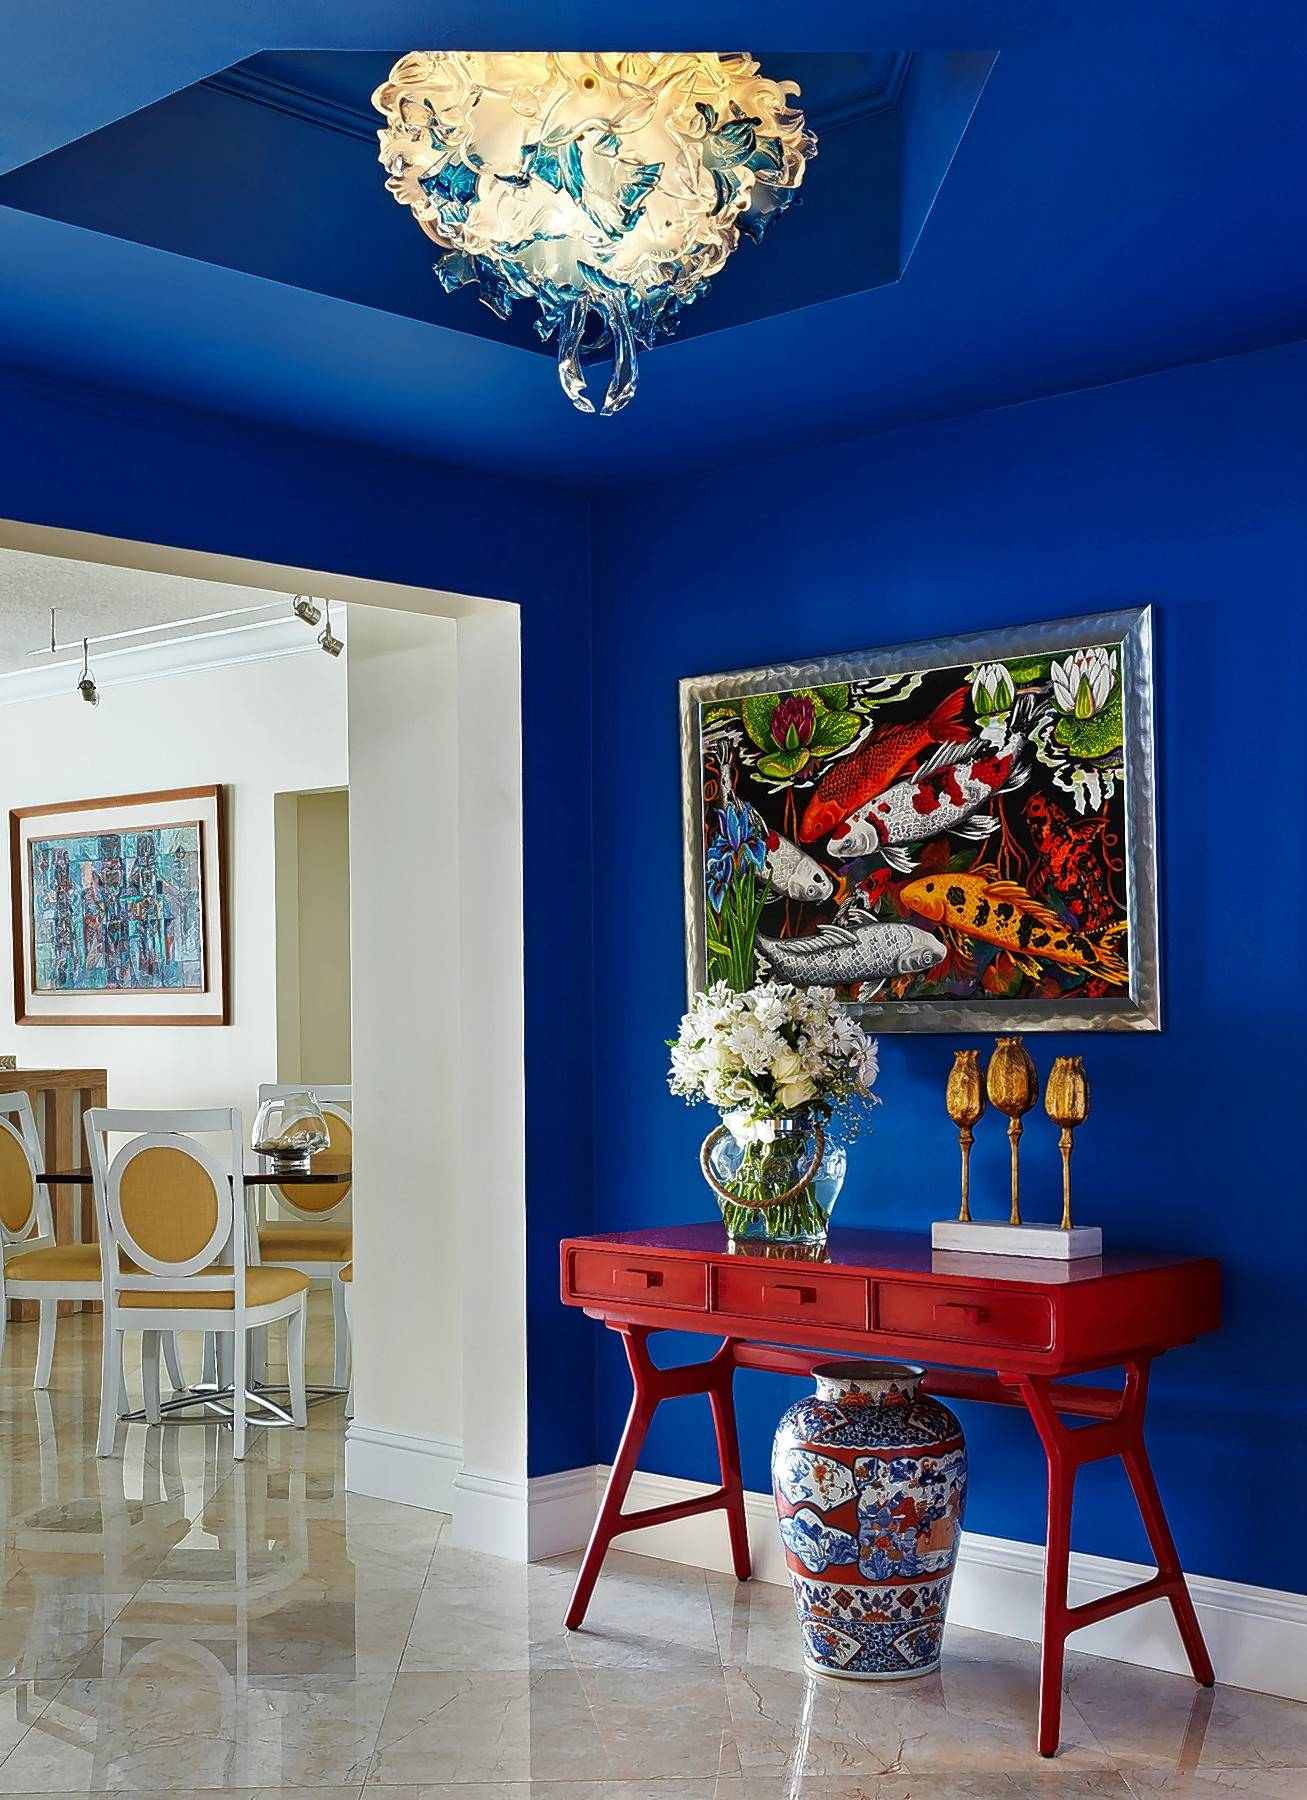 Cobalt blue can add a splash of bold color to any room.